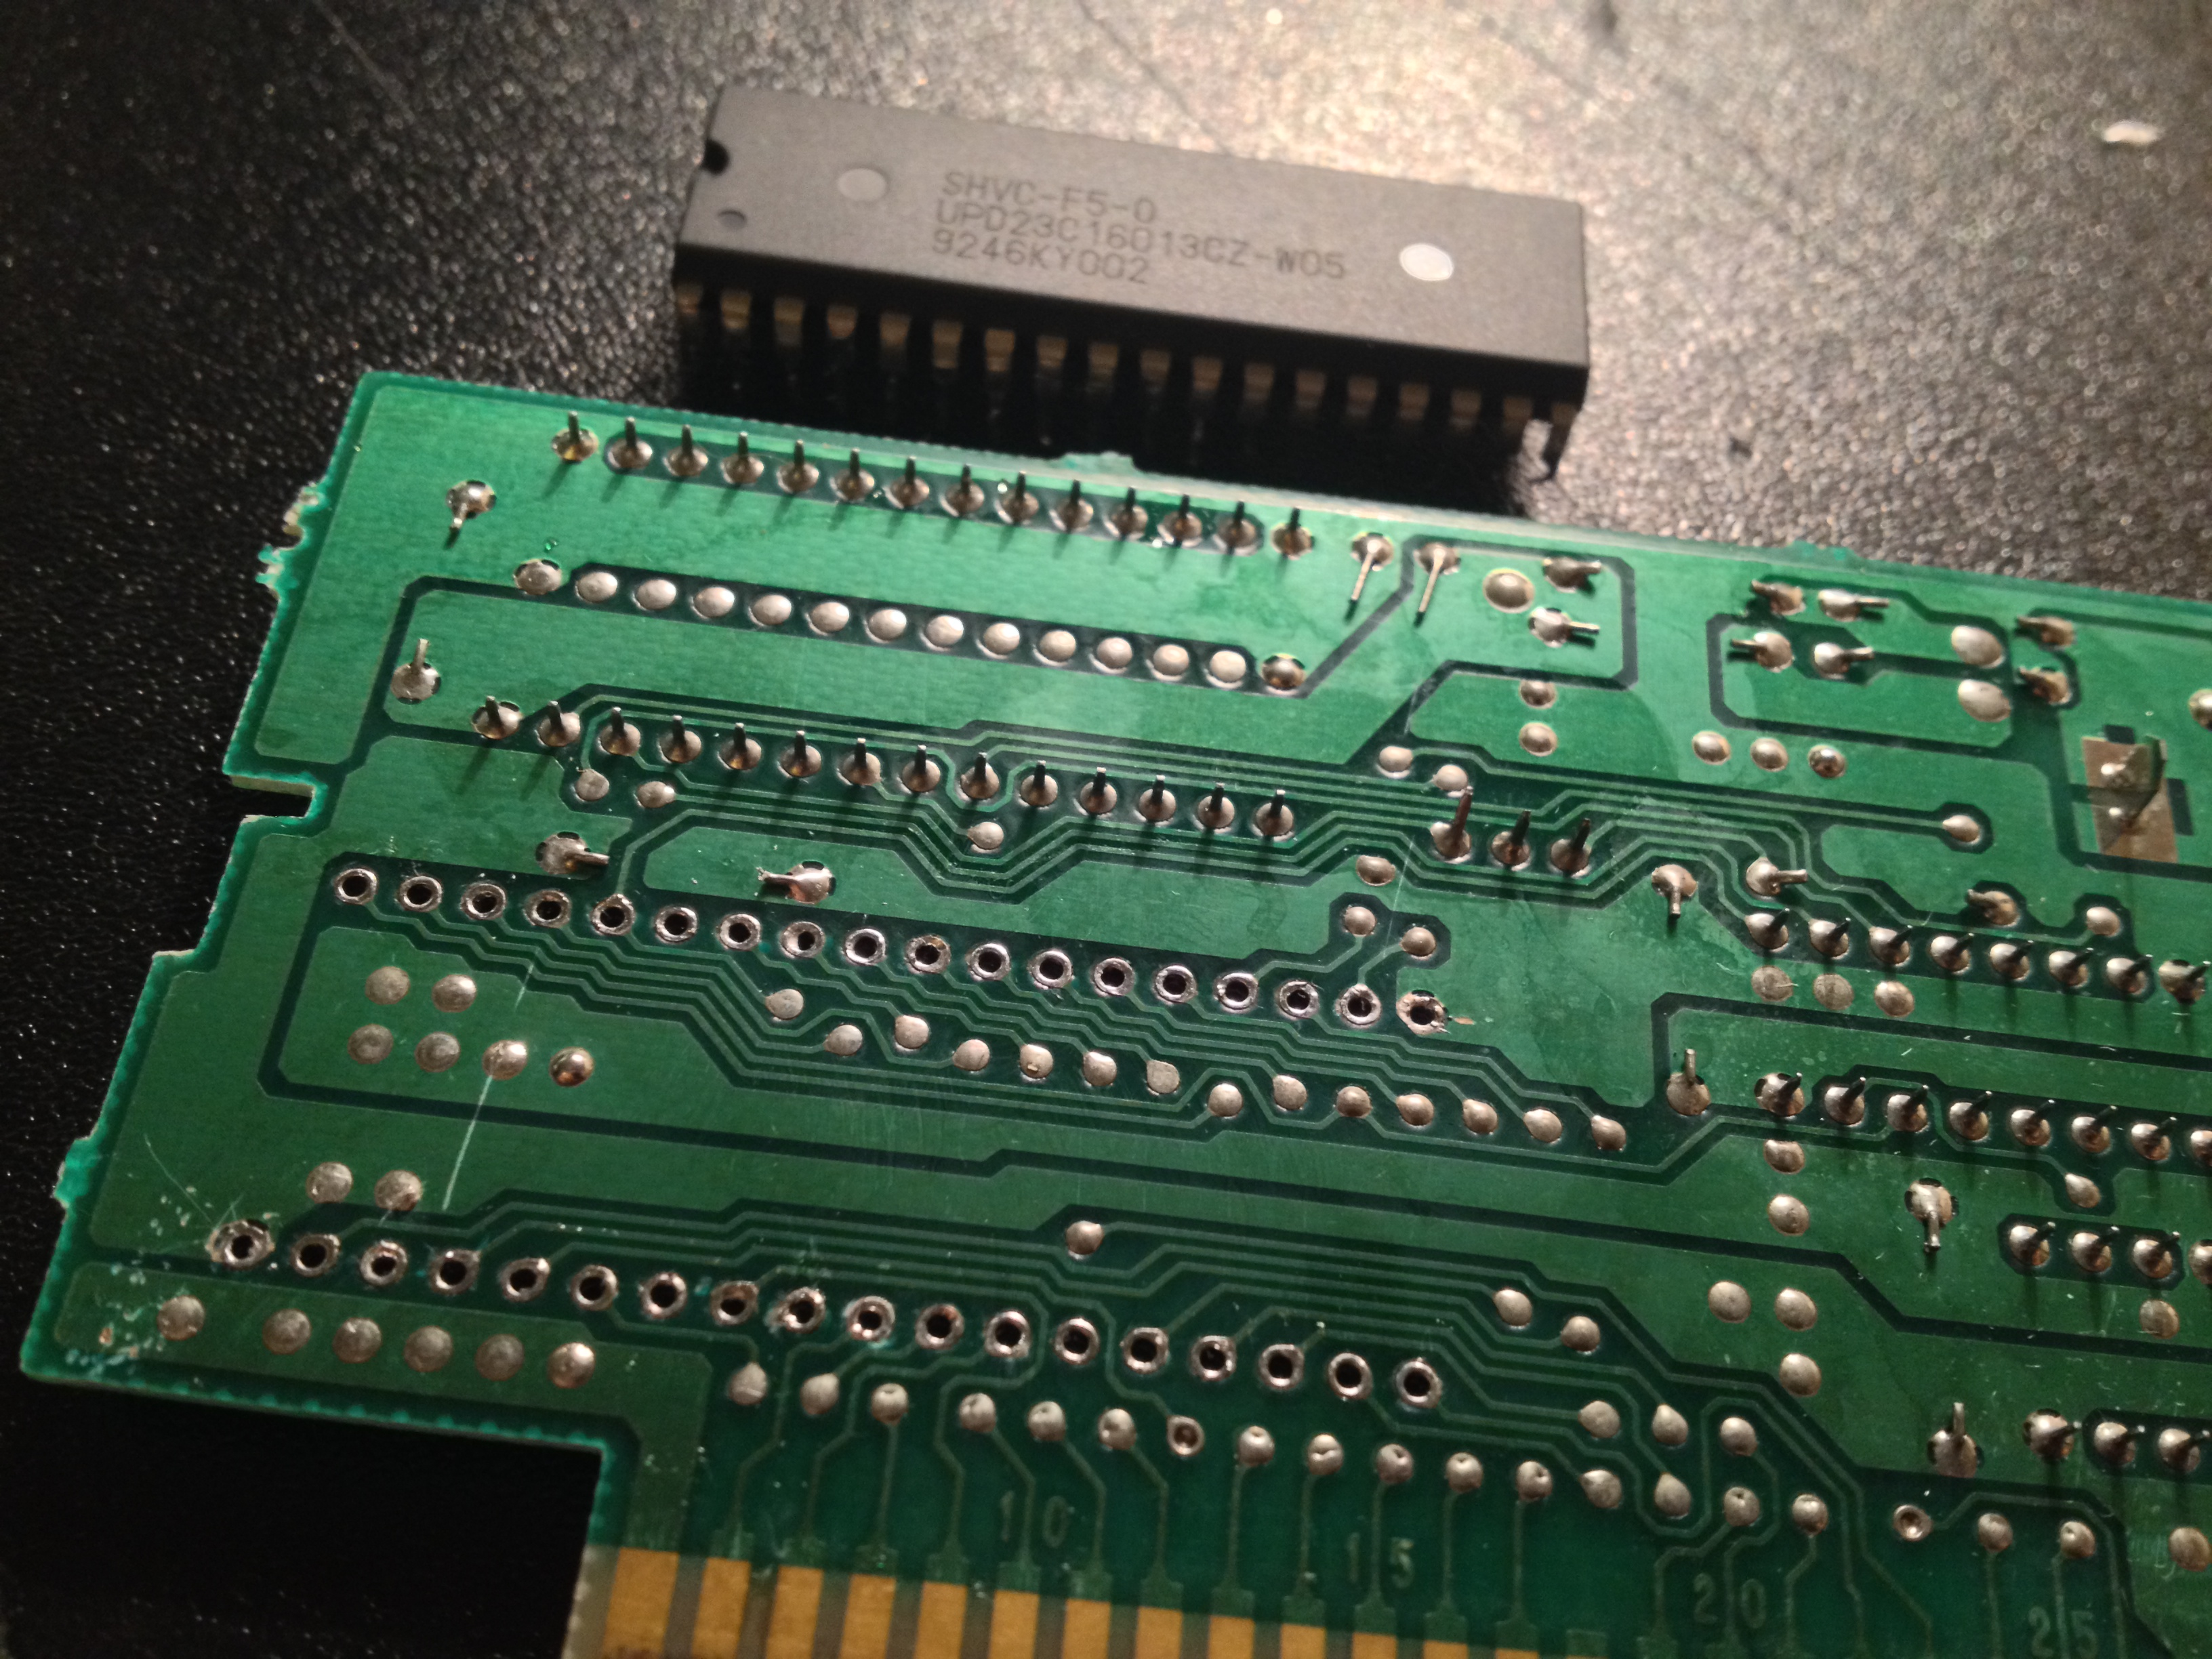 Snes Reproduction Cart Tutorial Jaska Gaming Eprom Burner Card Circuit Diagram Old Mask Rom Removed After A Lot Of Pumping